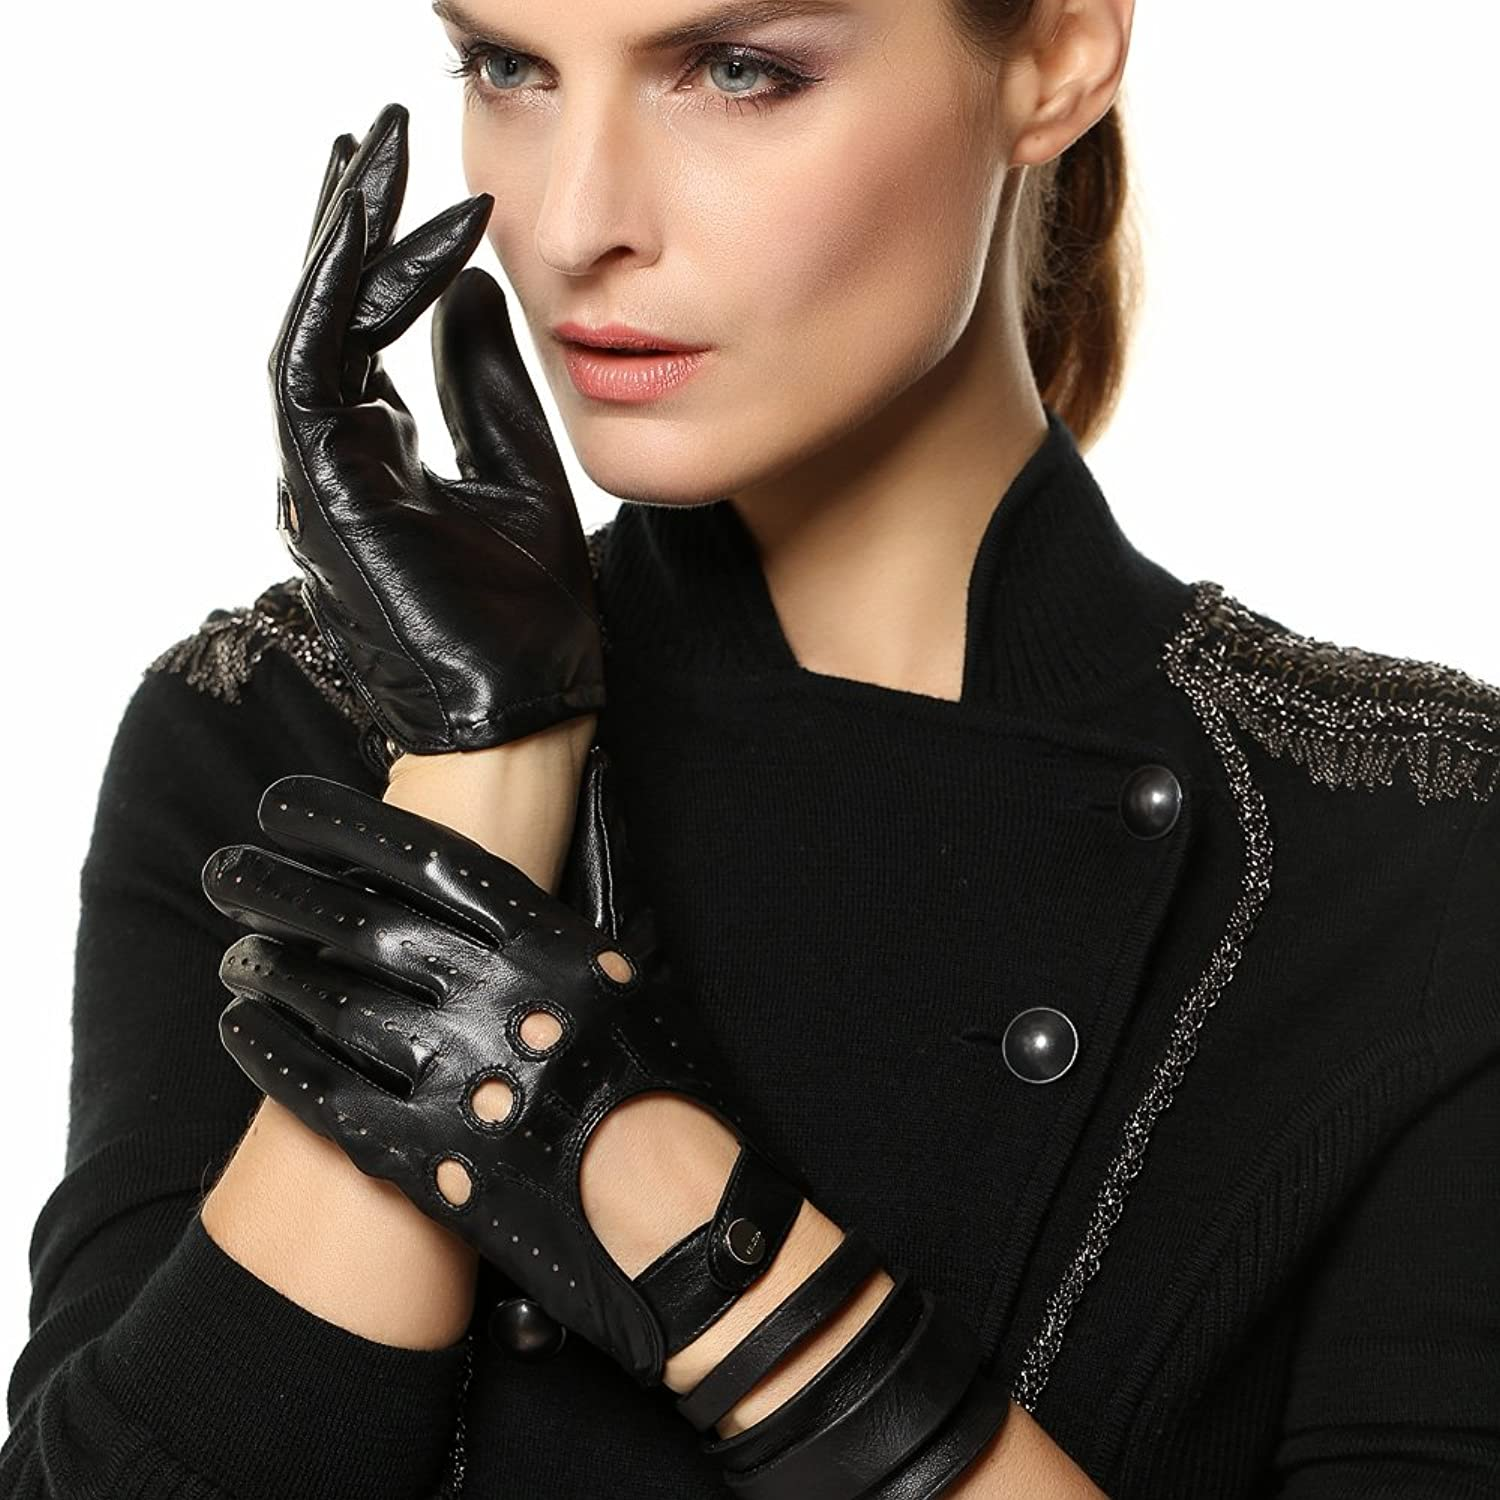 Motorcycle leather gloves amazon - Elma Tradional Women S Italian Nappa Leather Gloves Motorcycle Driving Open Back 6 5 Black At Amazon Women S Clothing Store